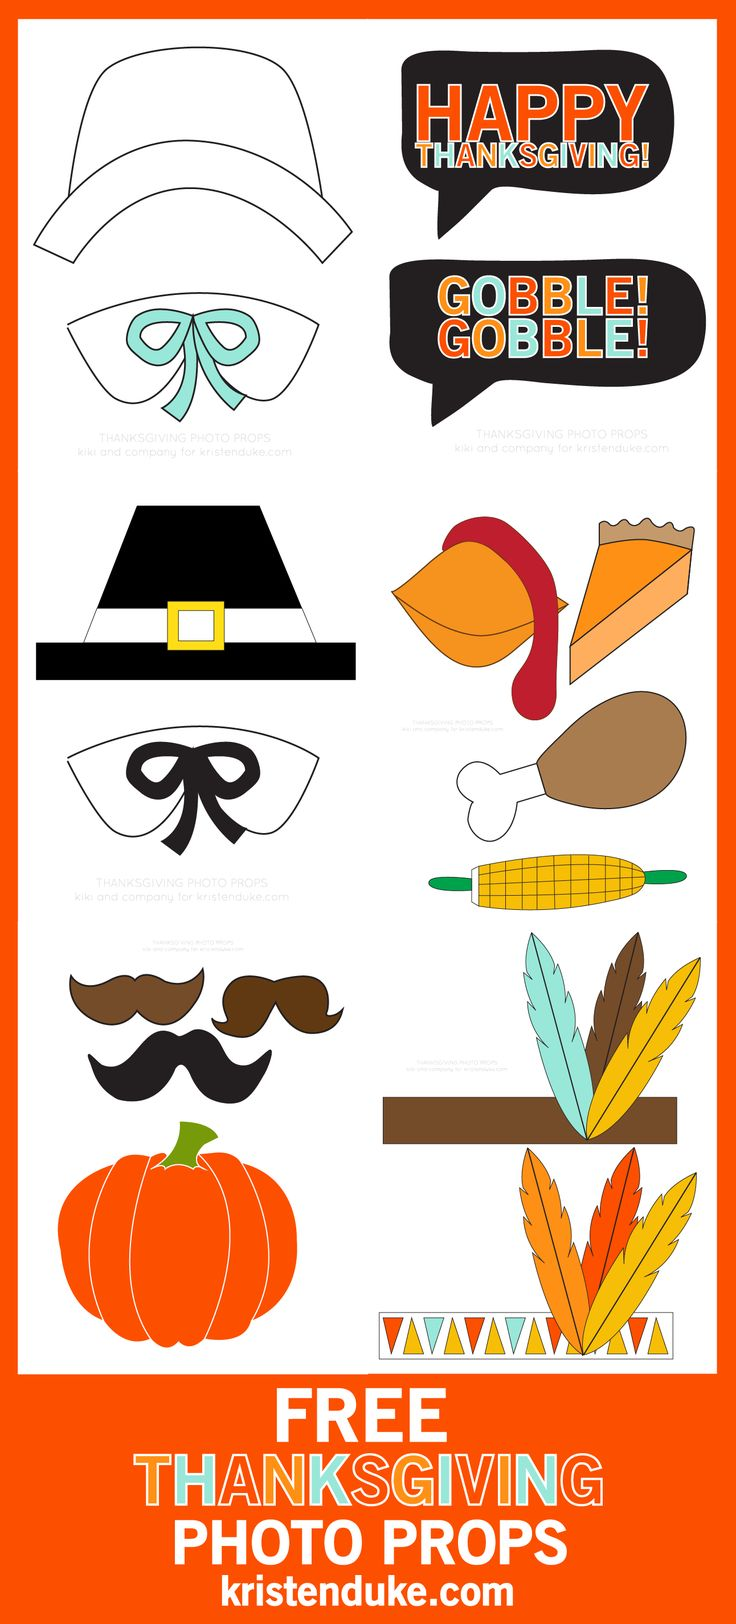 Free Thanksgiving photo booth printables!